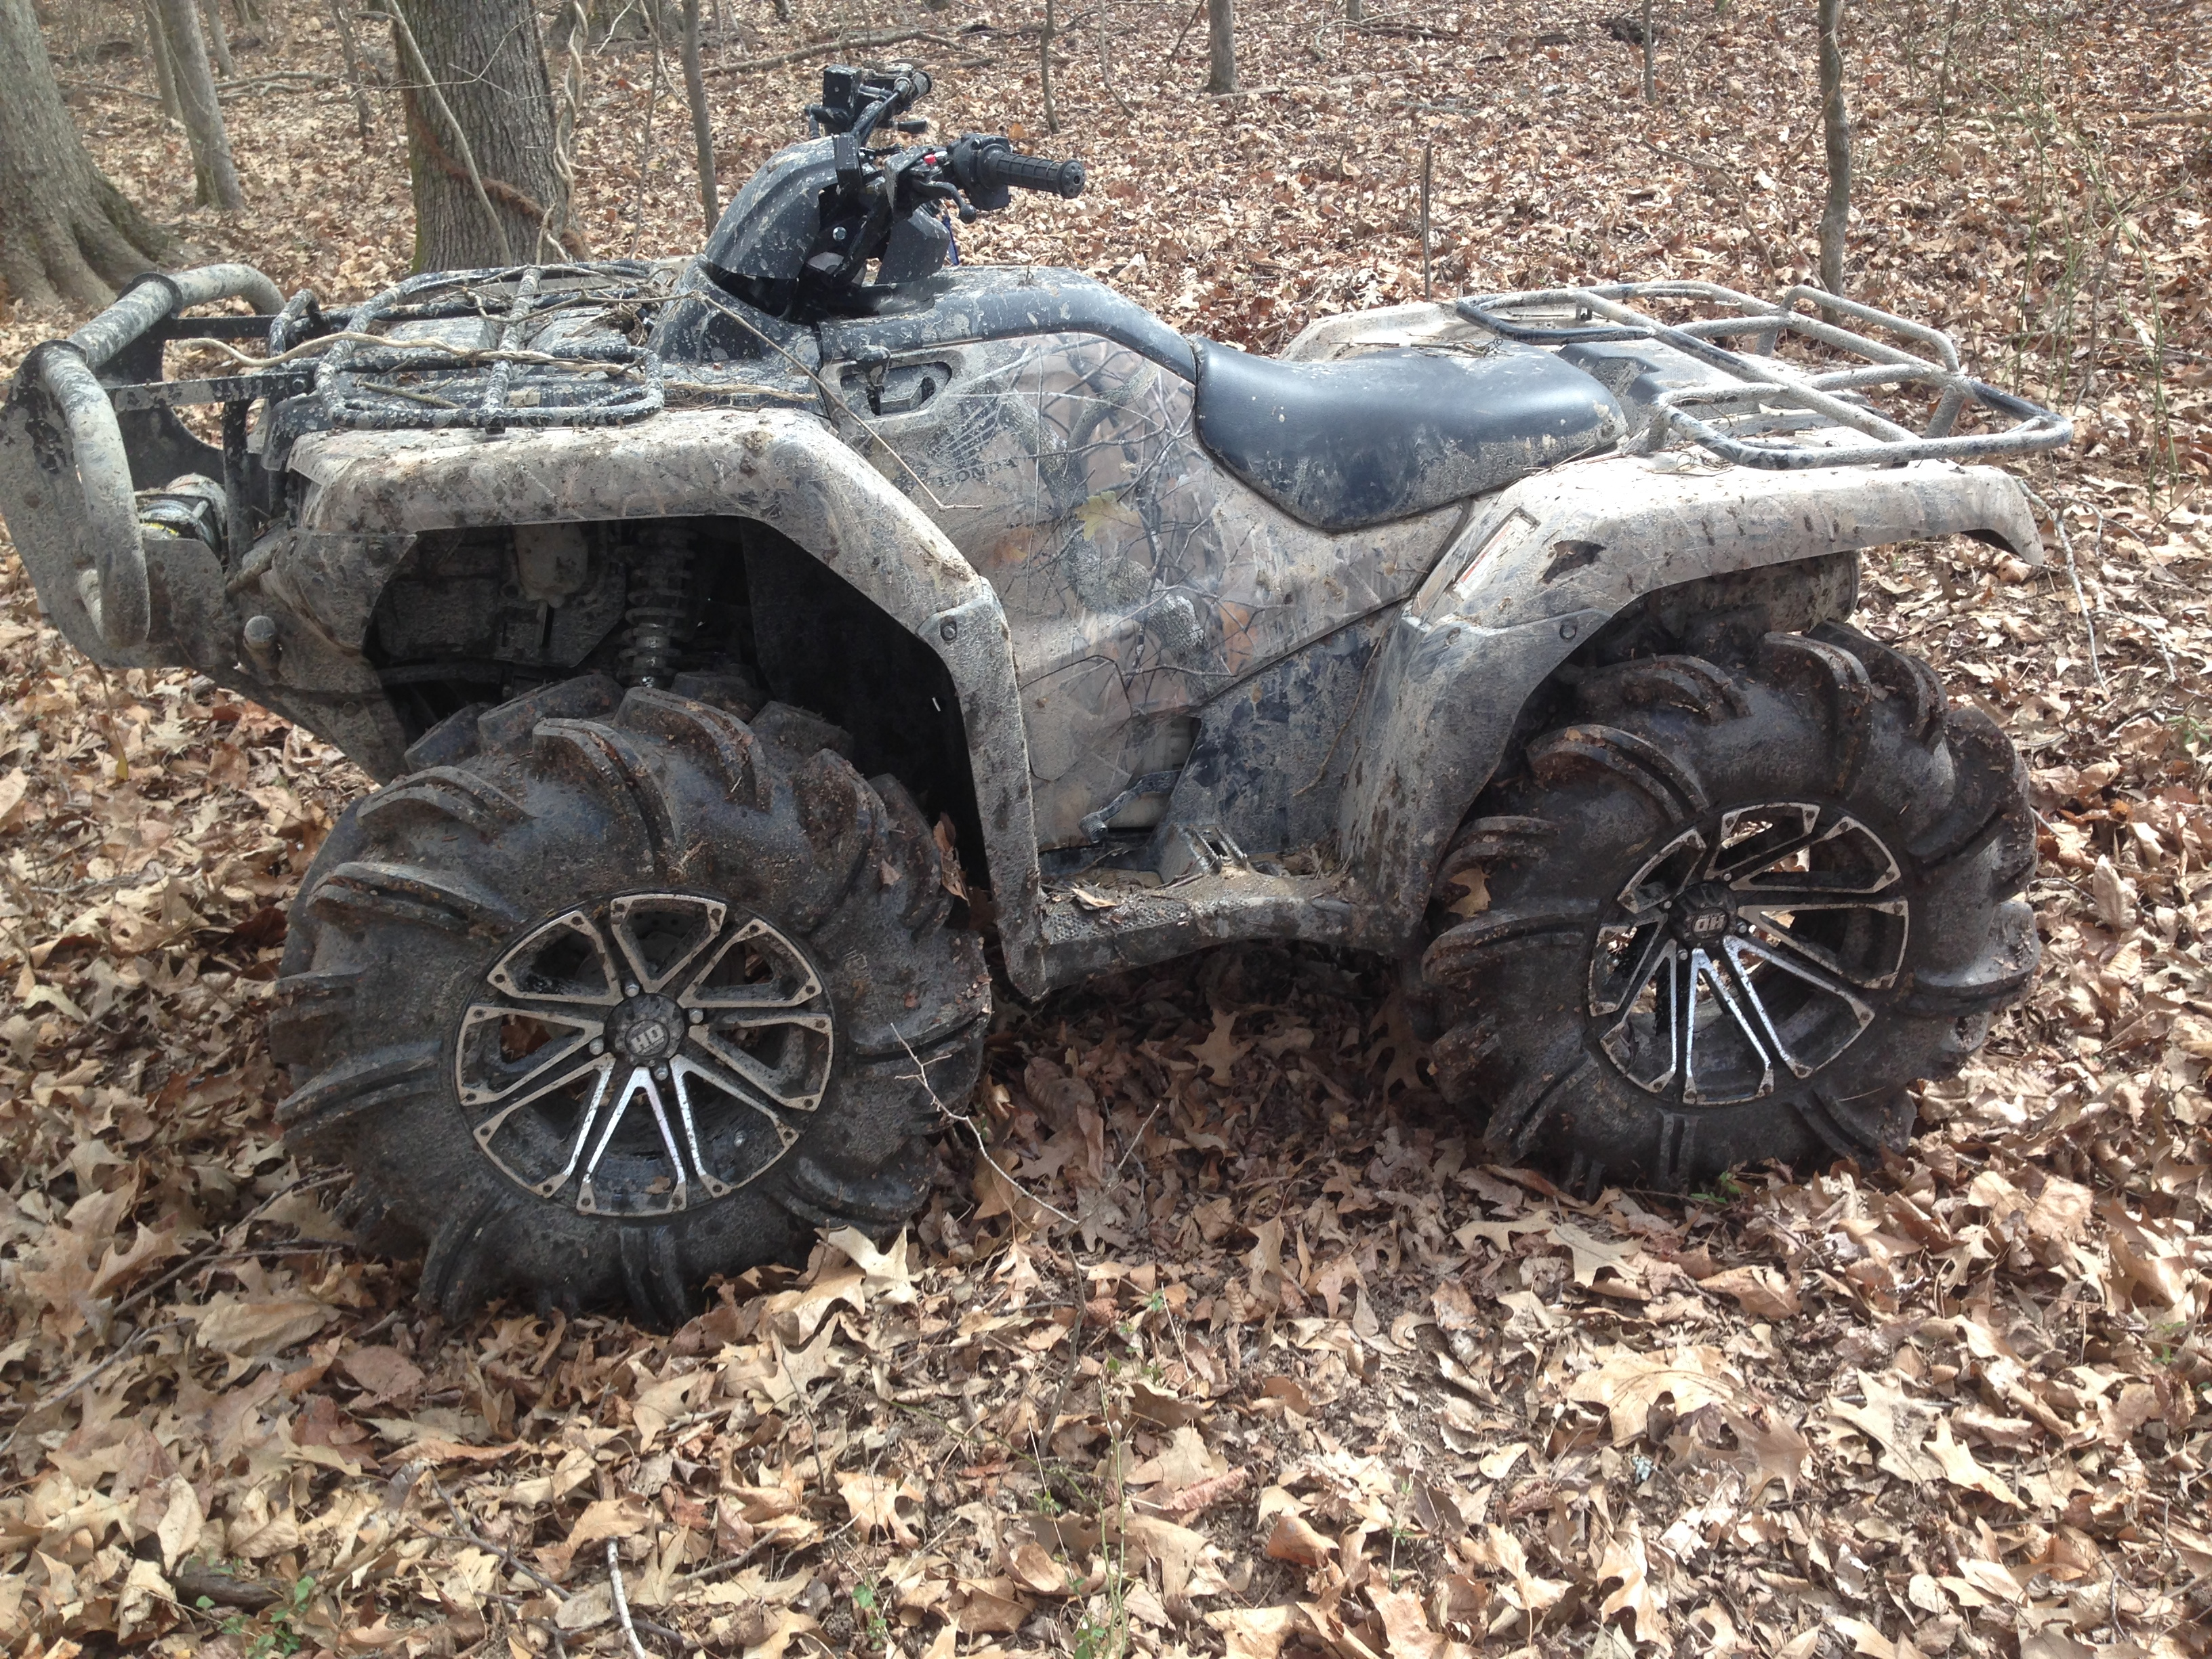 2014 Rancher Fm1 Build Page 4 Honda Atv Forum 2013 420 Wiring Diagram Click Image For Larger Version Name Img 1595 Views 9528 Size 396